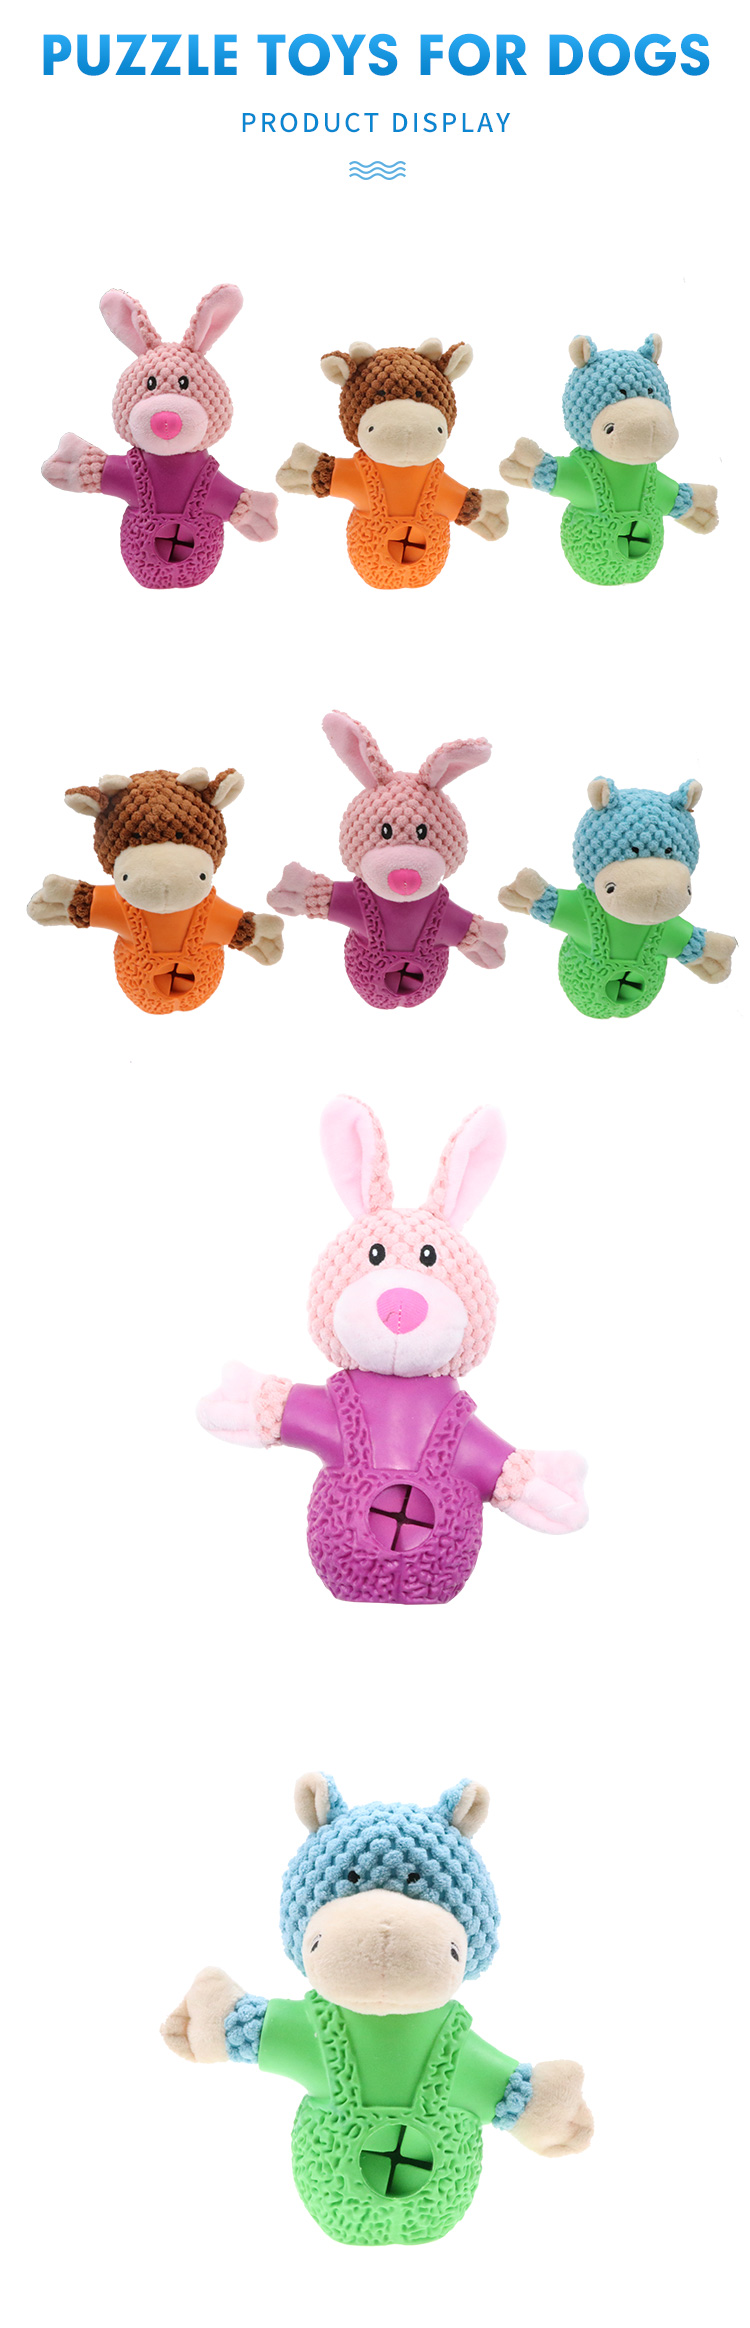 Chewing toys Wholesale Pet Products in China Rabbit-shaped plush